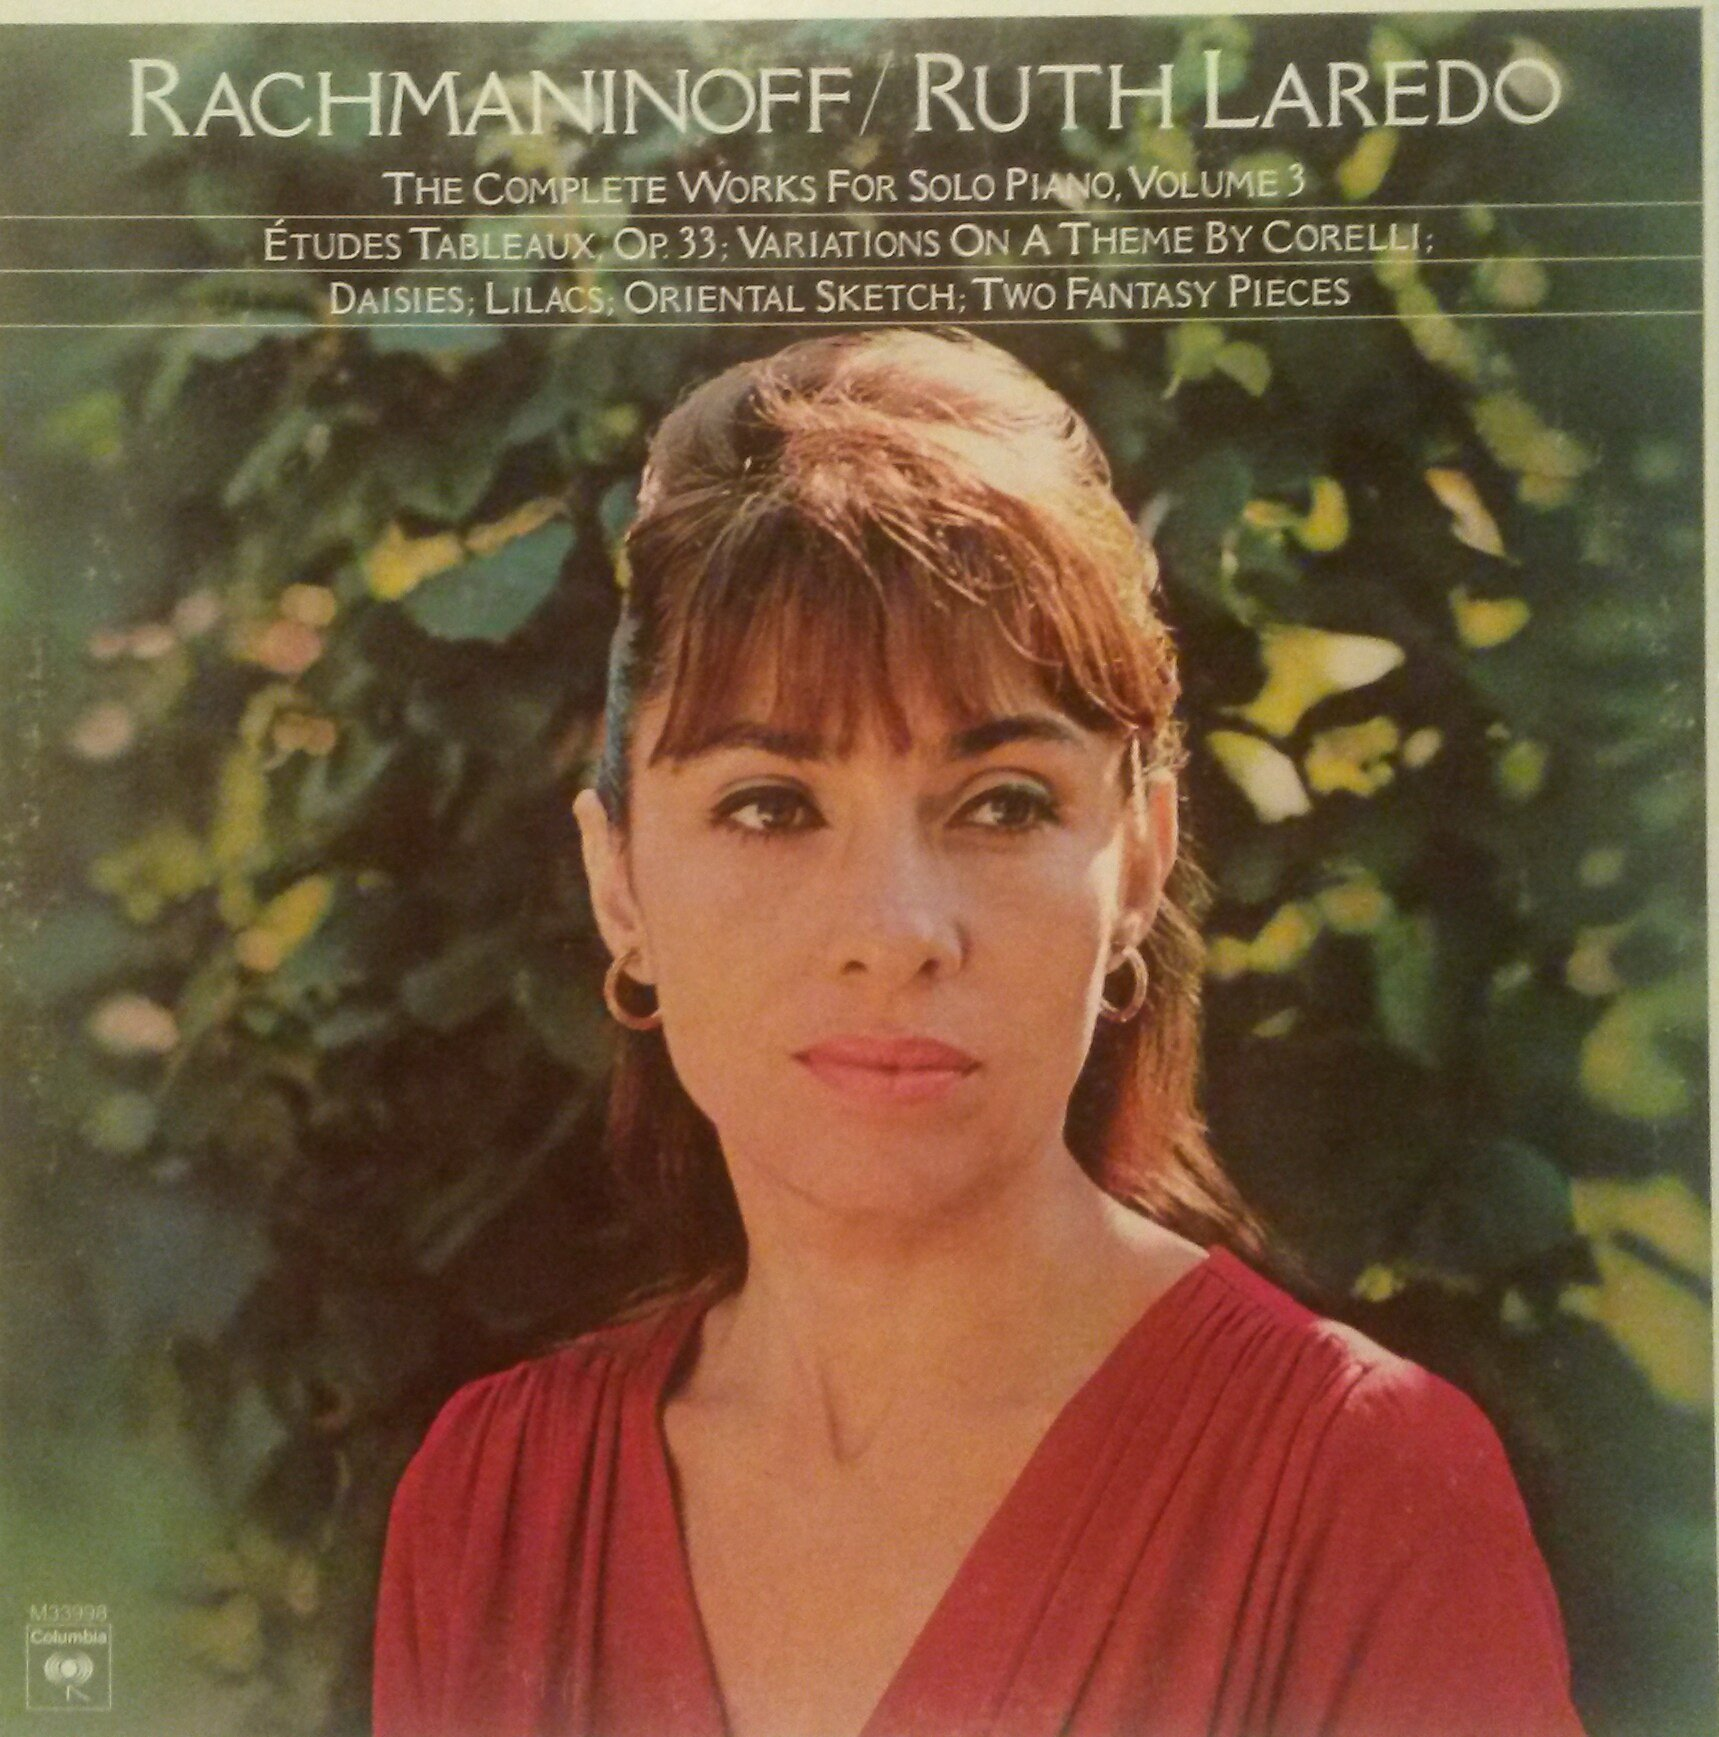 Rachmaninoff: THE Complete Works for Solo Piano, Volume 3: Etudes Tableaux, Op. 33 ~ Variations on a Theme By Corelli ~ Lilacs ~ Daisies ~ Oriental Sketch ~ Fantasy Piece No. 1 in G Mi.~Fantasy Piece No.2 in D Mi.~ Ruth Laredo,Piano ~Columbia M 33998